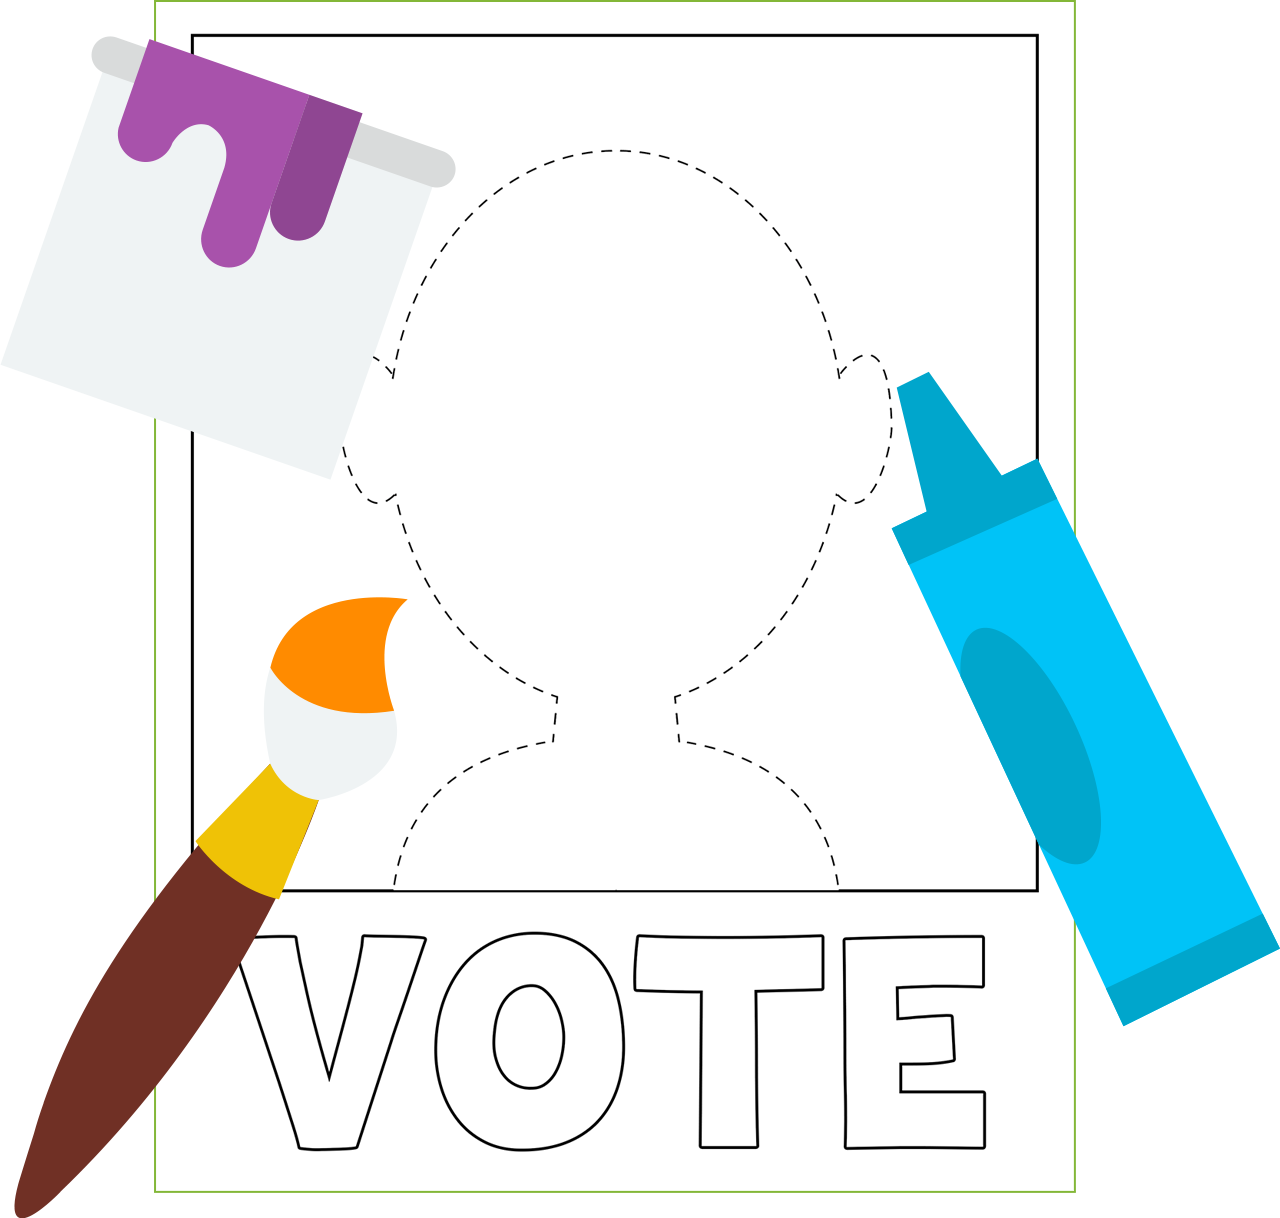 Vote drawing election poster. Of a blank for